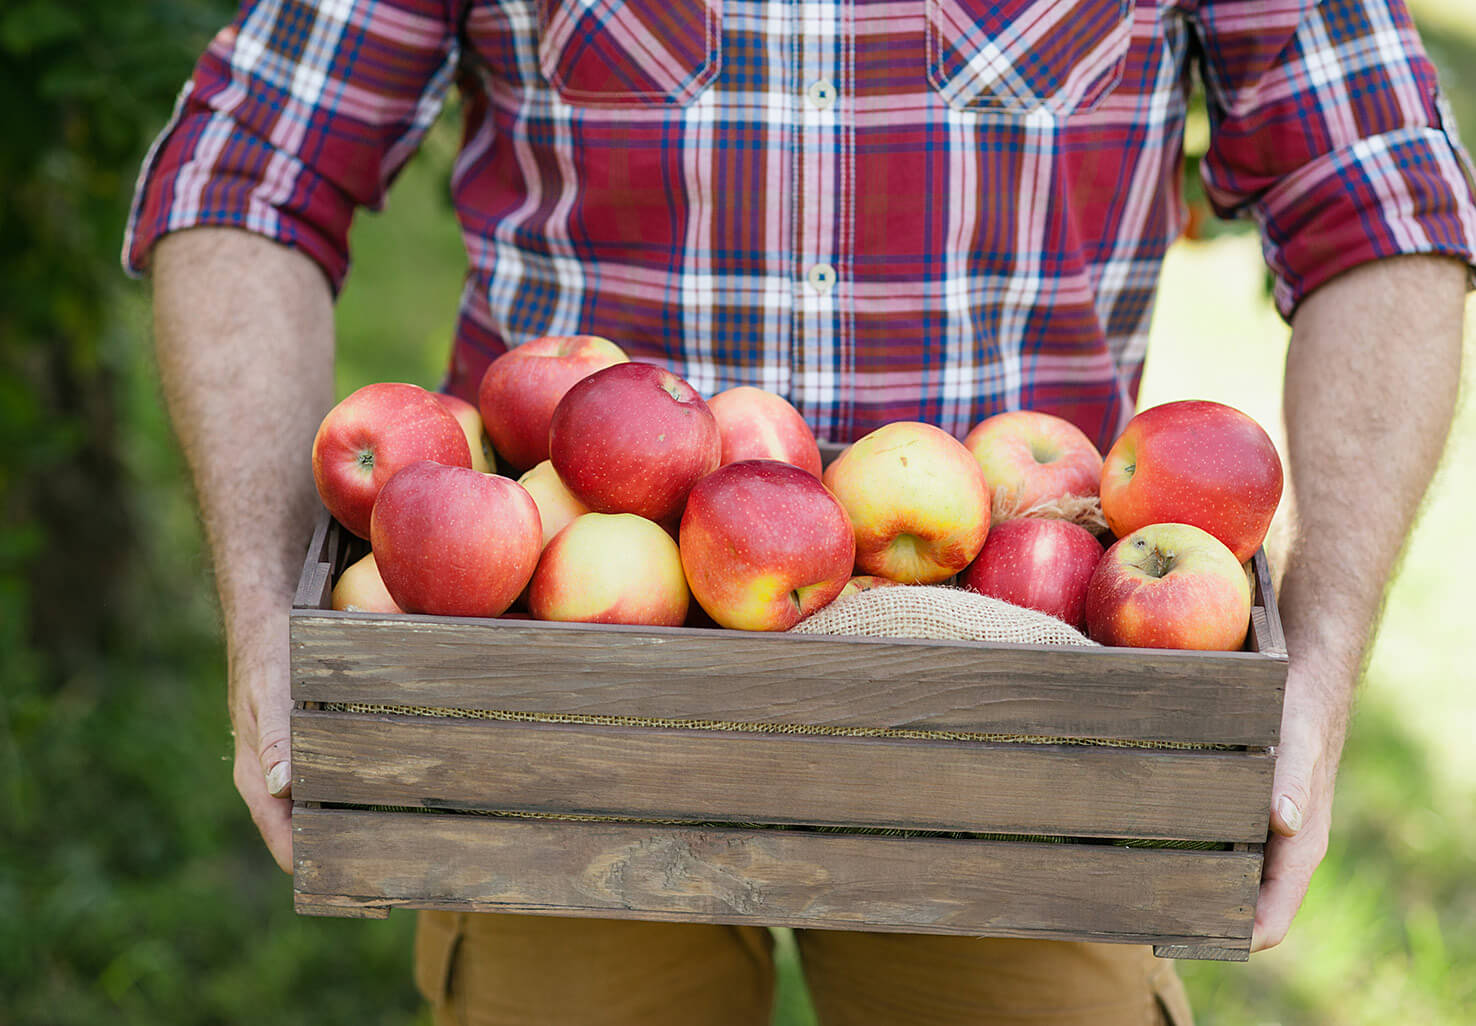 Man holding a box of apples at an orchard